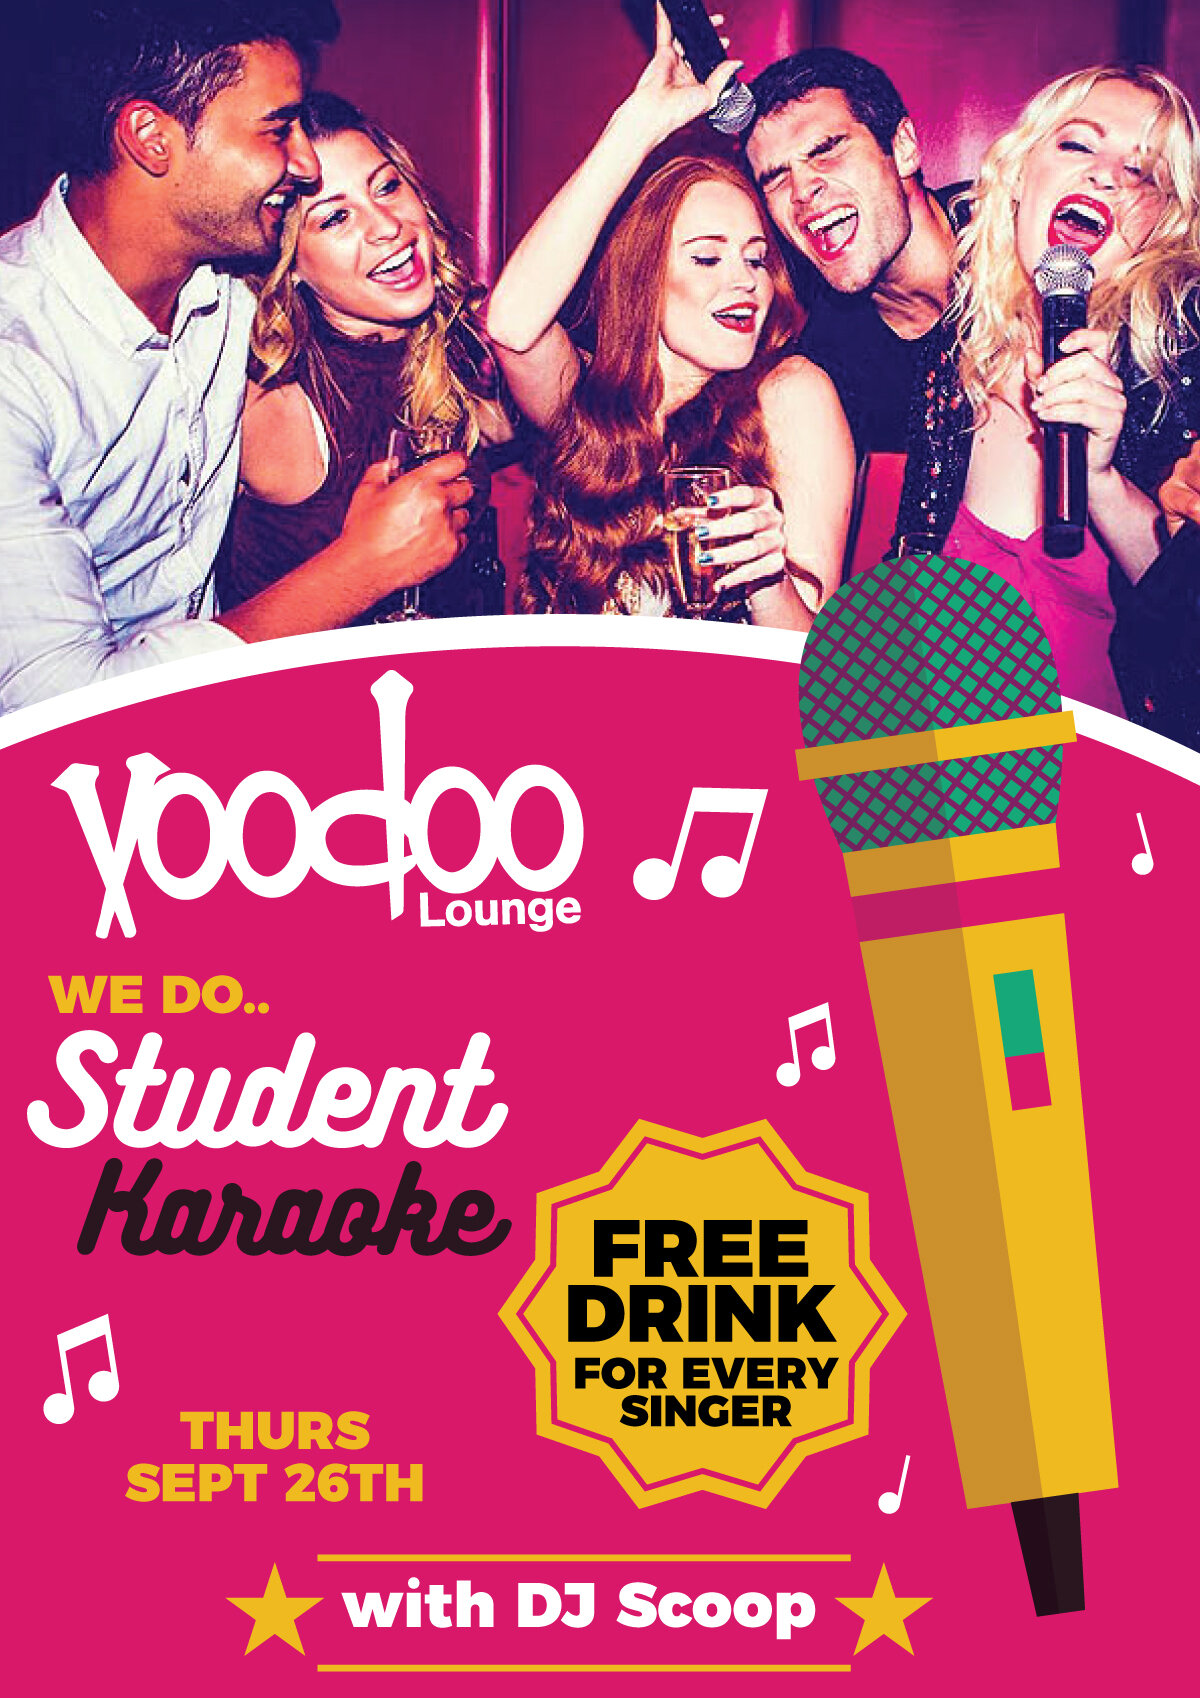 voodoo-venue---thurs---We-Do-Student-Karaoke-thurs-sept-26-2019.jpg